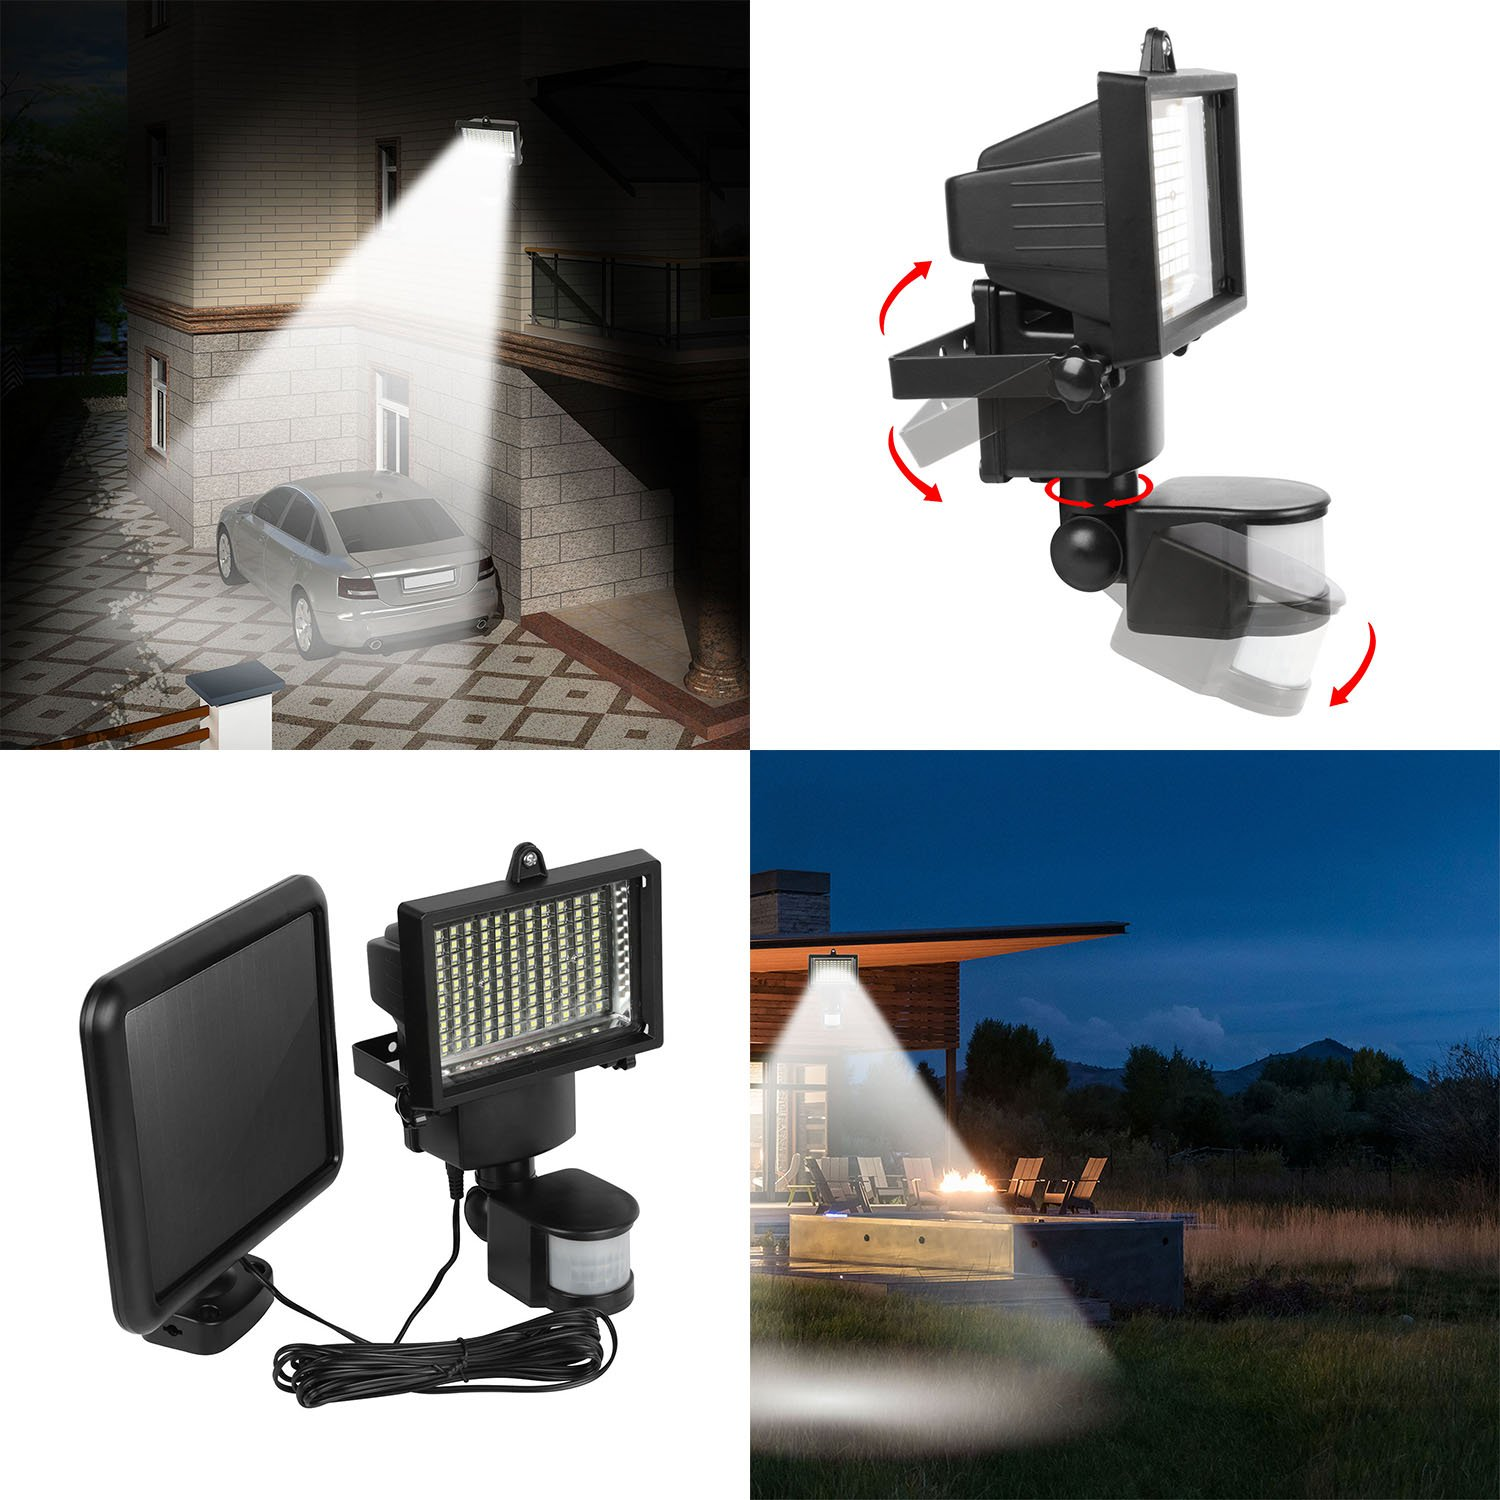 【Super Bright】GPCT 100 LED Pir Motion Sensor Auto On/Off Solar Security Light- Deck, Garden, Garage, Patio, Pathway, Yard, Driveway, Outdoor Gate, Wall, Shed, Lawn, Landscape Pool School Villa Hotel